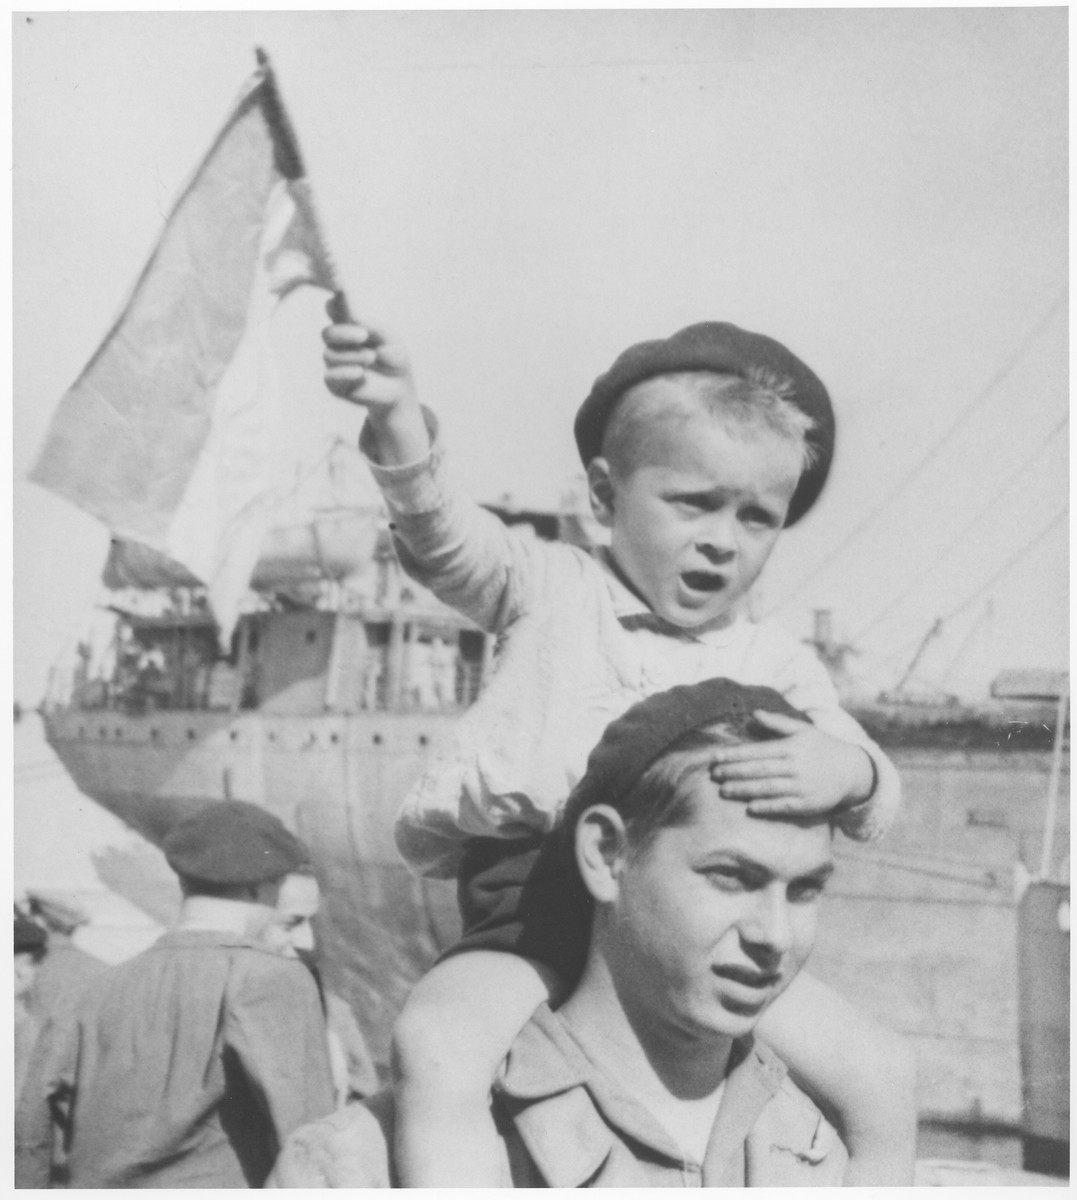 A young Jewish DP child waves a homemade flag while riding on the shoulders of an older boy at the port of Marseilles.    The two boys are about to board the RMS Mataroa for Palestine.